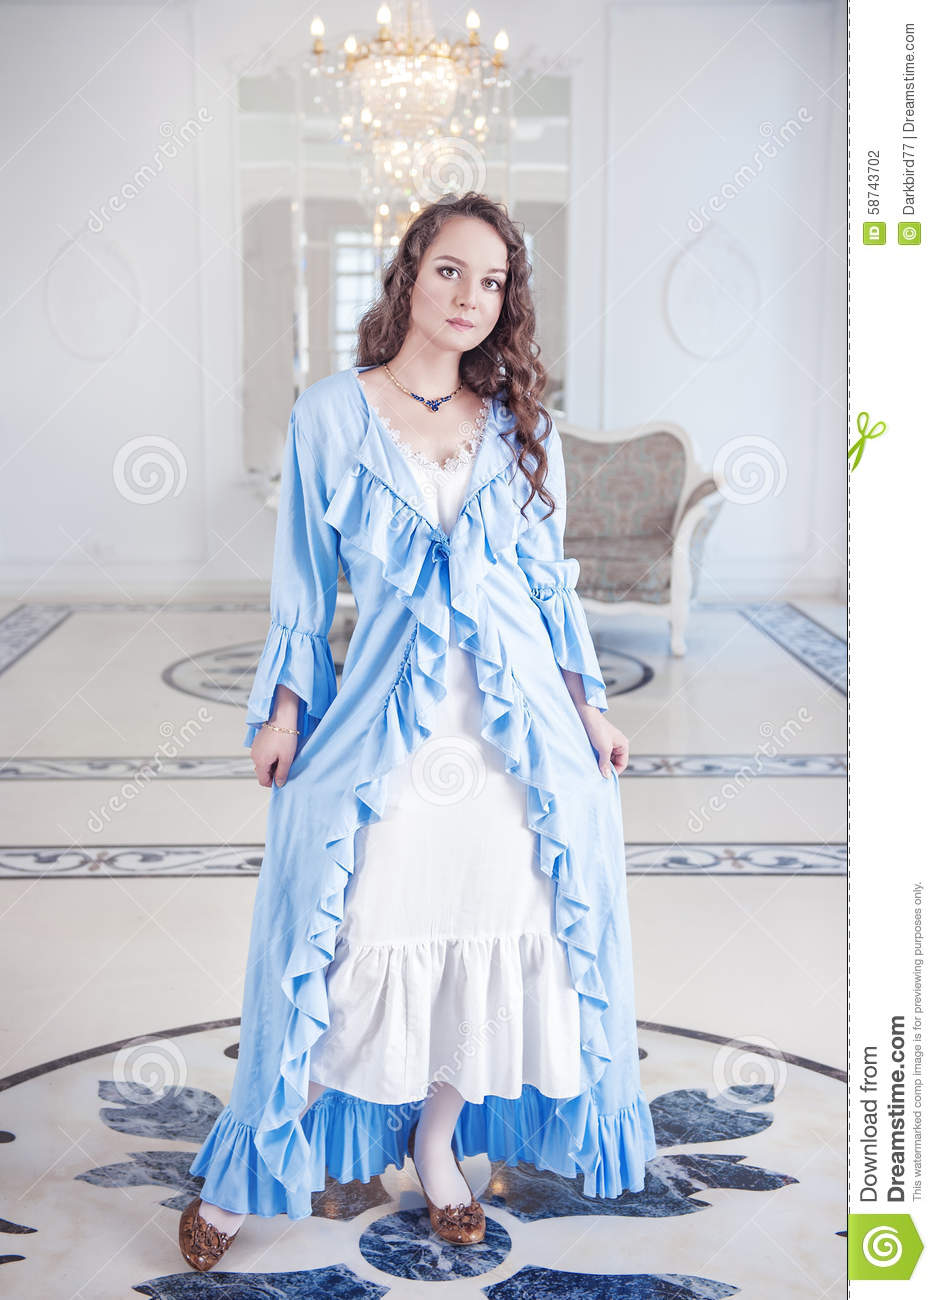 Beautiful Young Woman In Dressing Gown With Frill Stock Photo ...